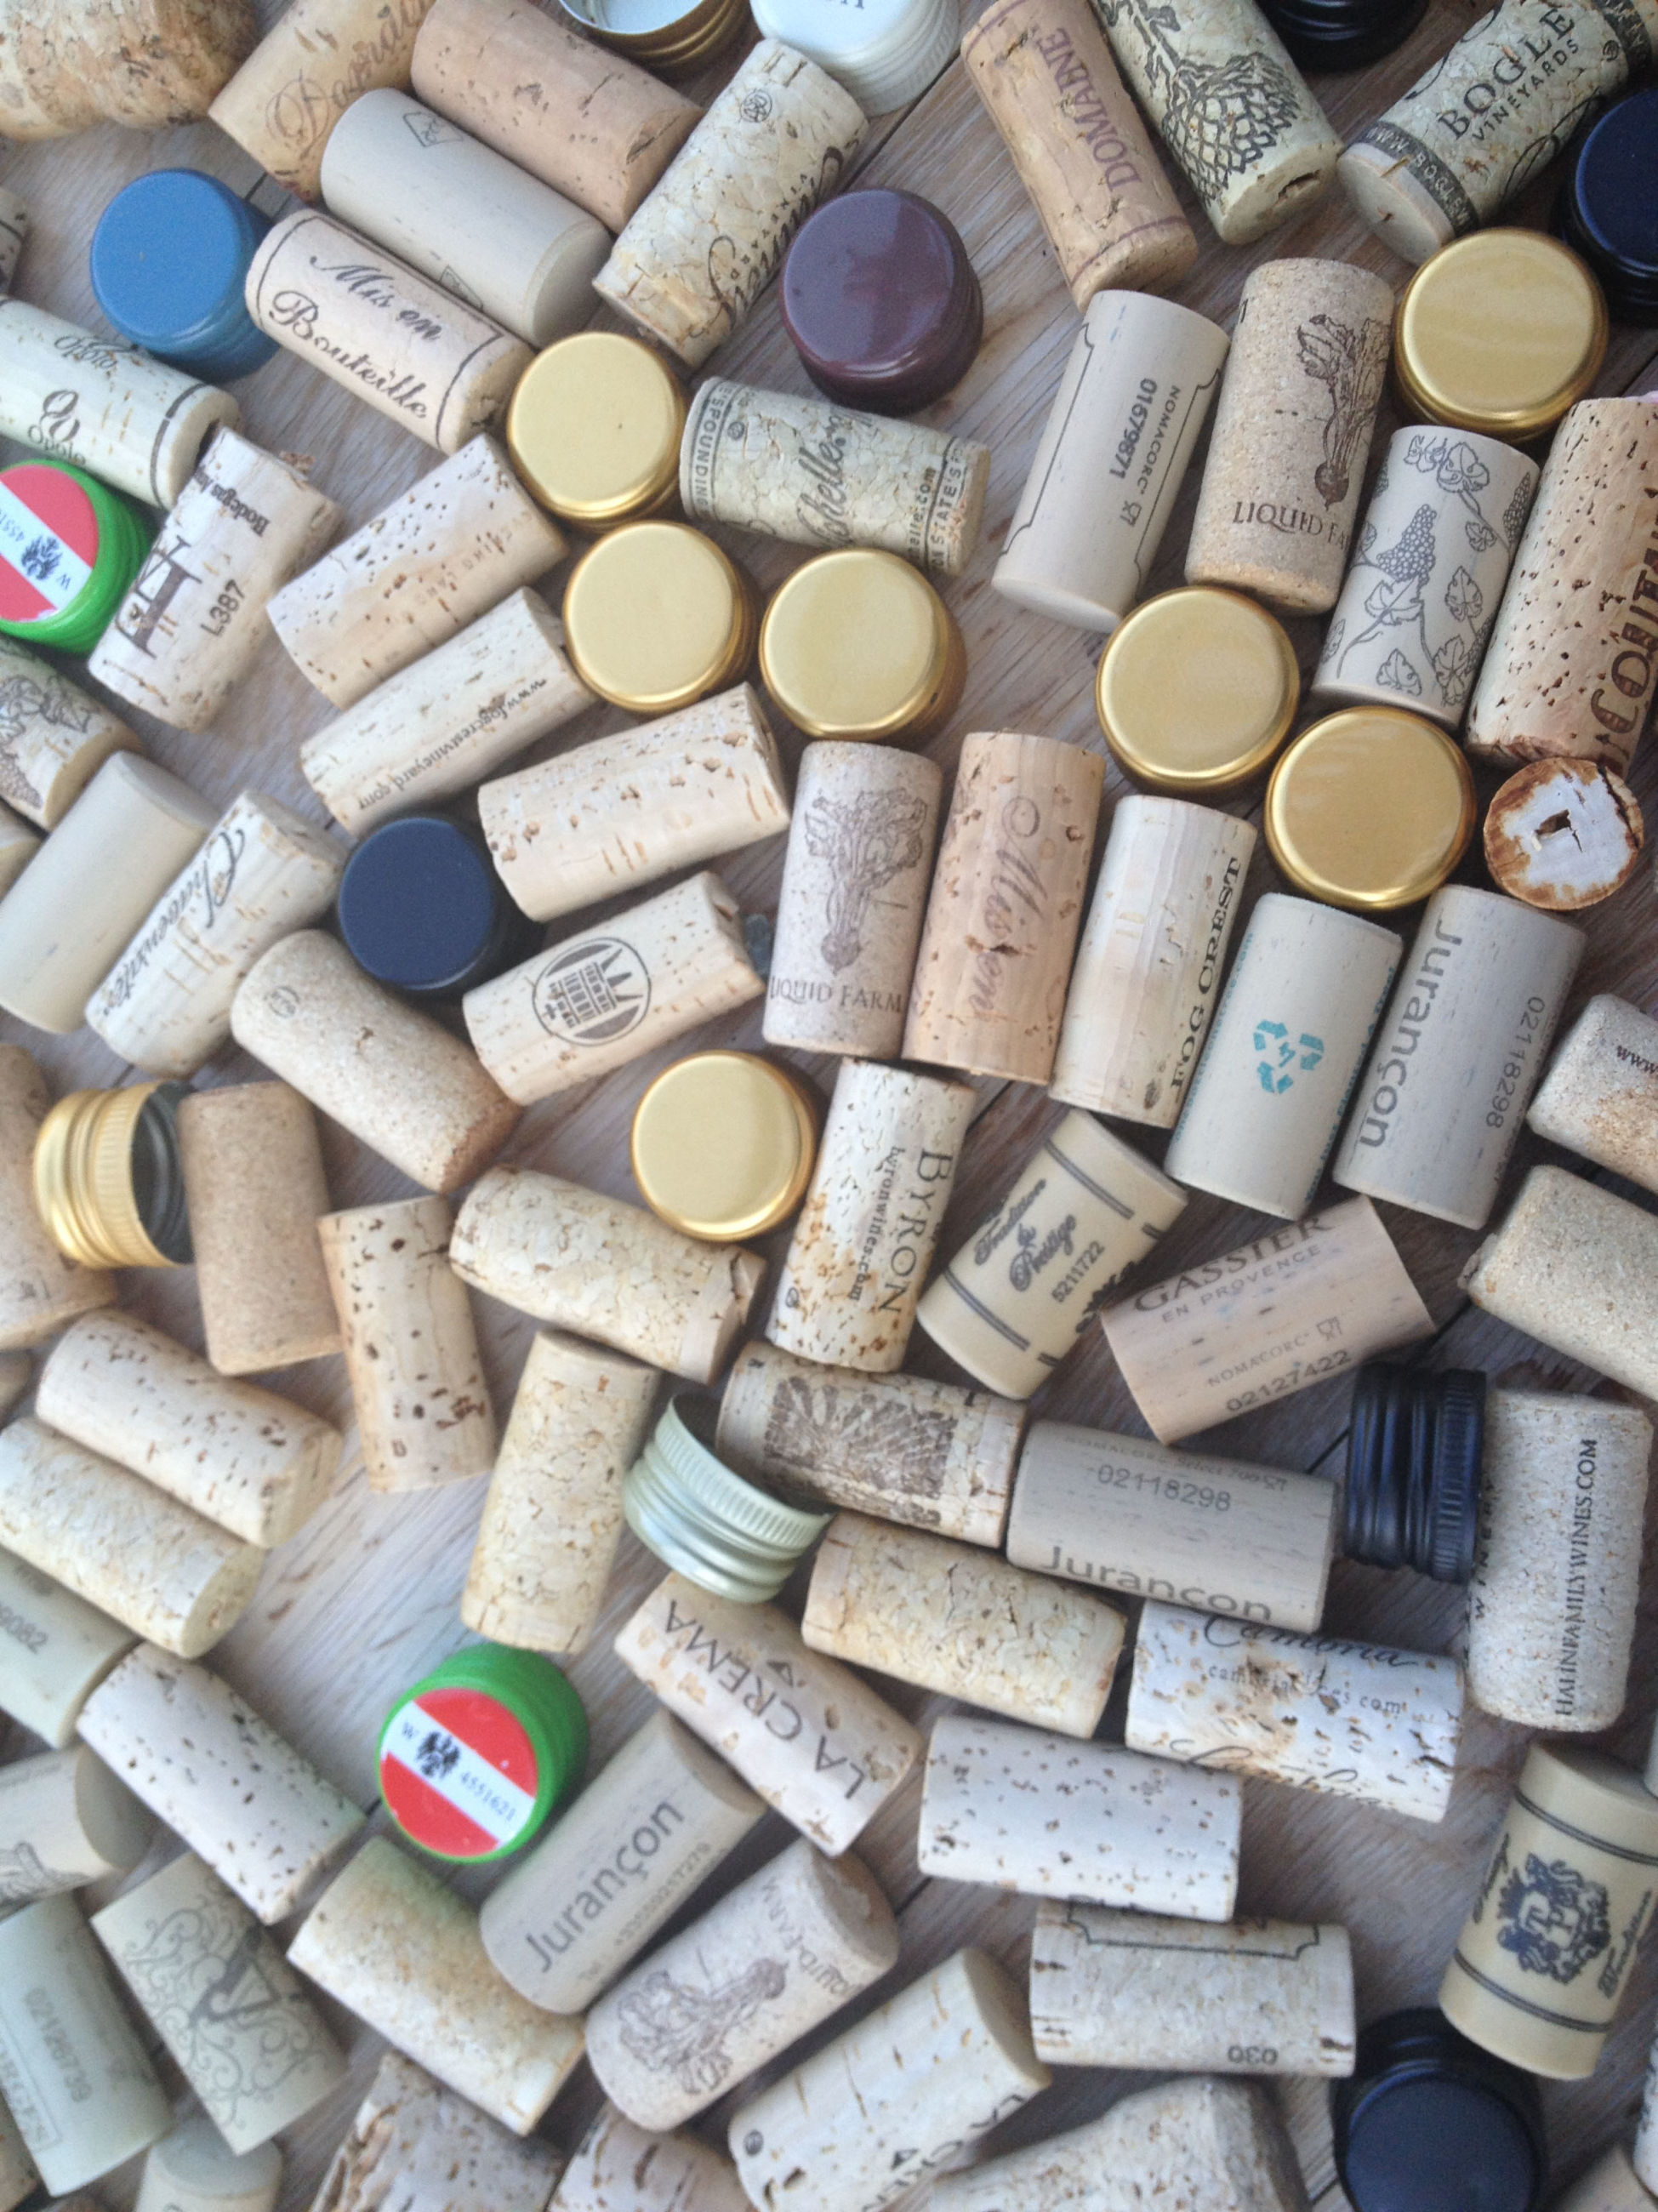 Getting Closure: Corks or Screw Caps?